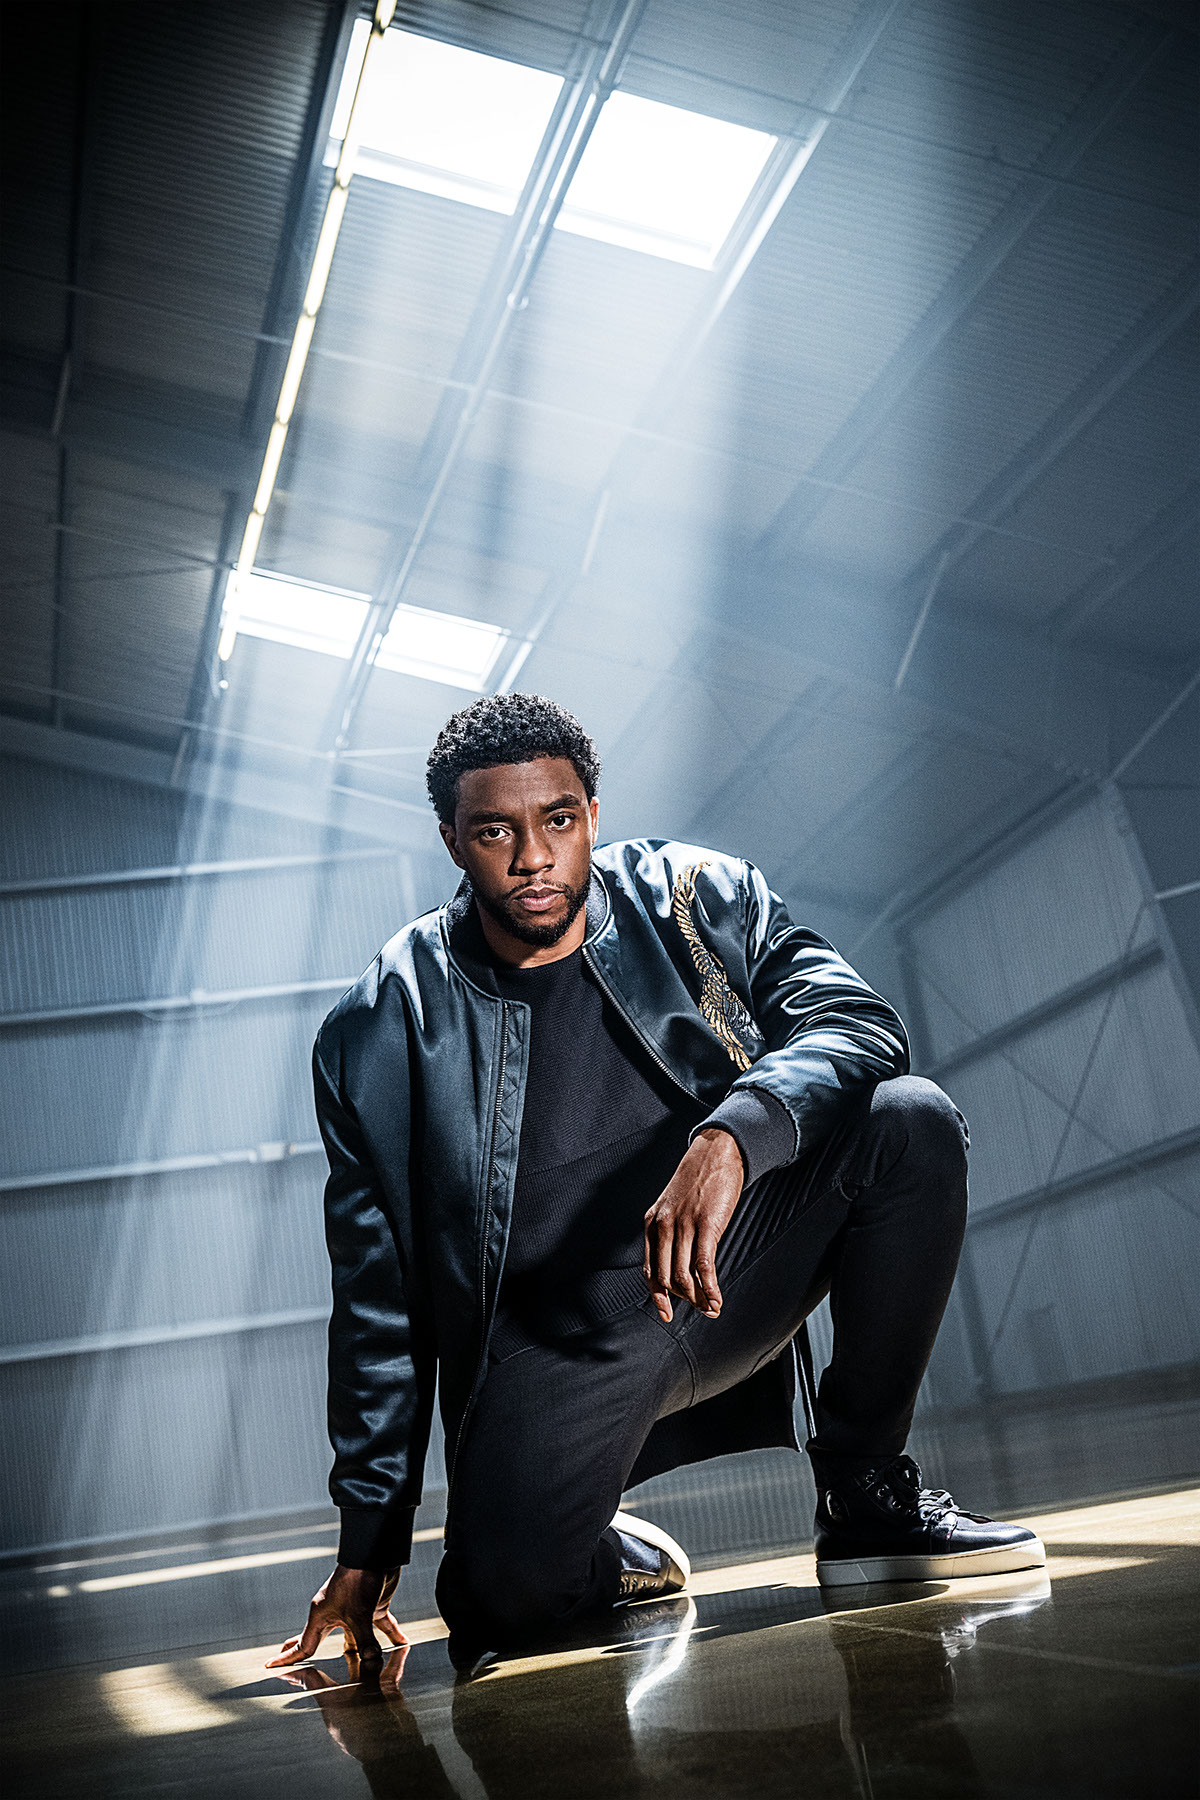 Chadwick Boseman Hd Wallpapers 7wallpapers Net